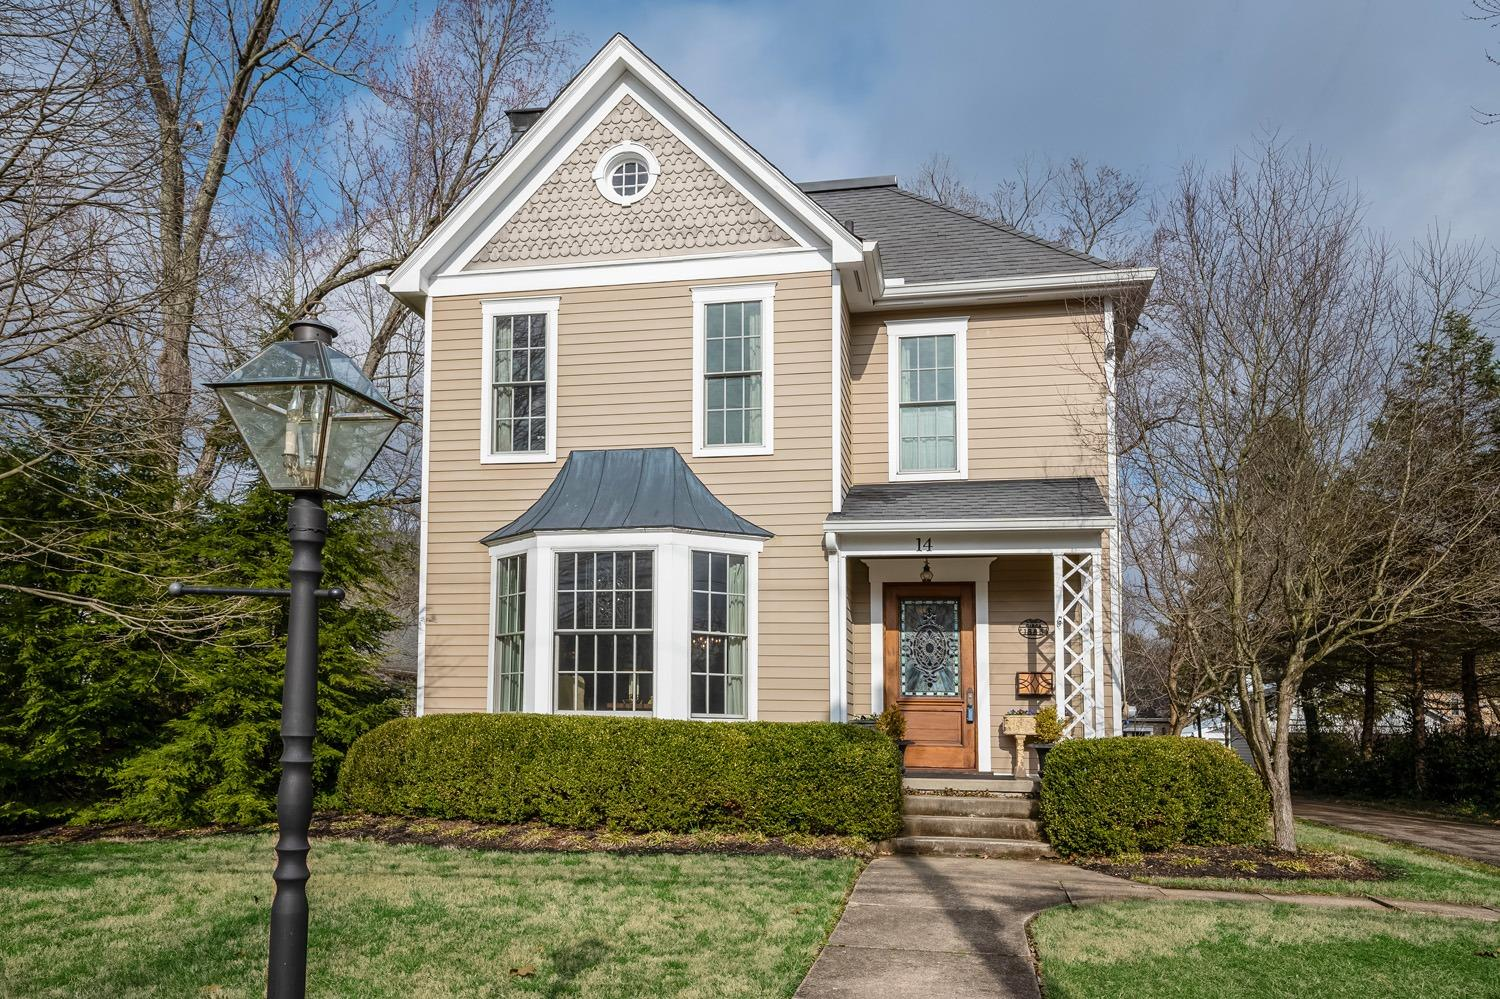 14 Cleveland Avenue Milford, OH